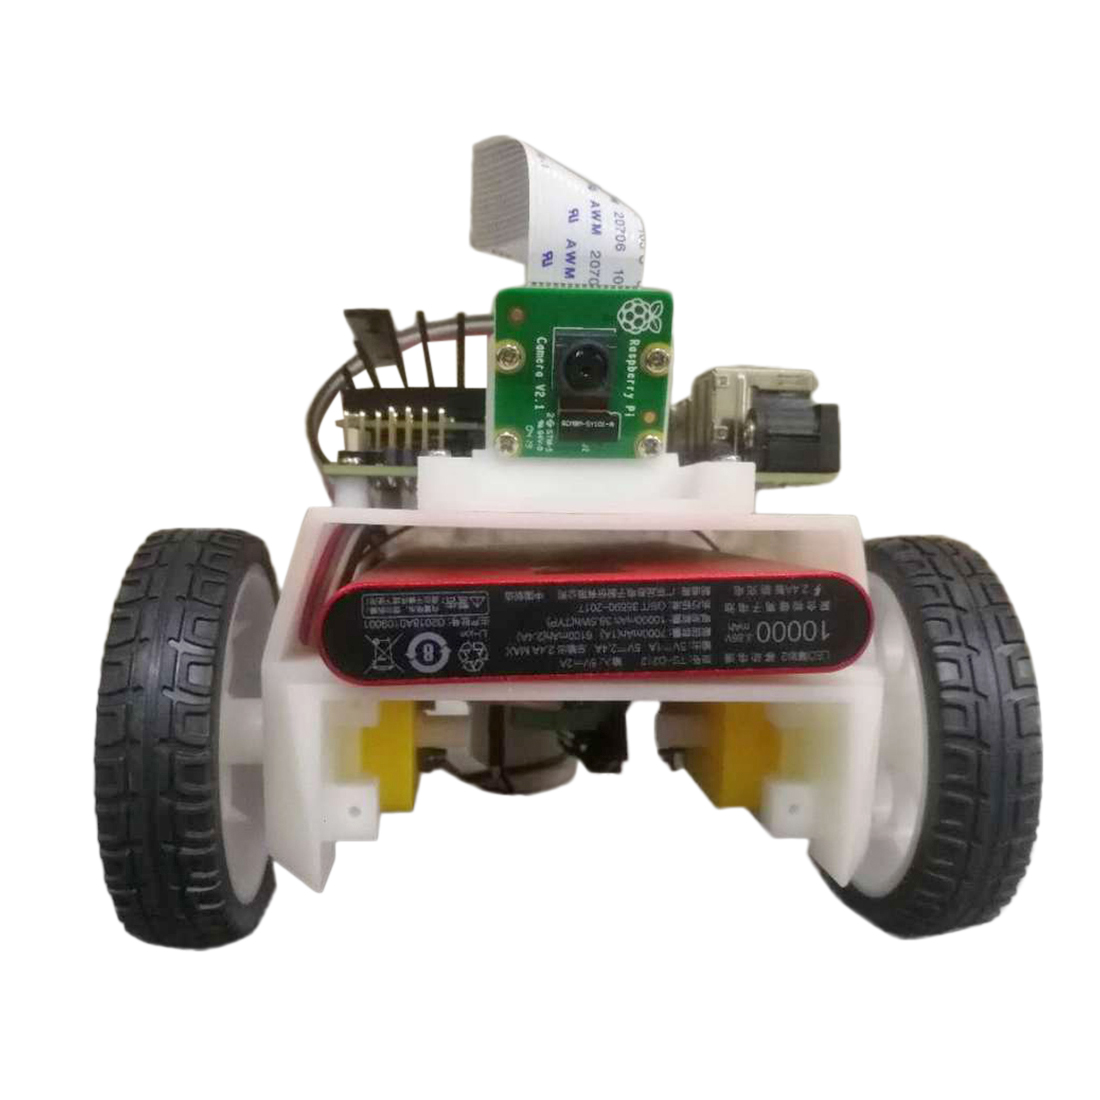 Intelligent Programmable Automatic Drive Robot Car Kit Educational Learning Teaching Science Kit